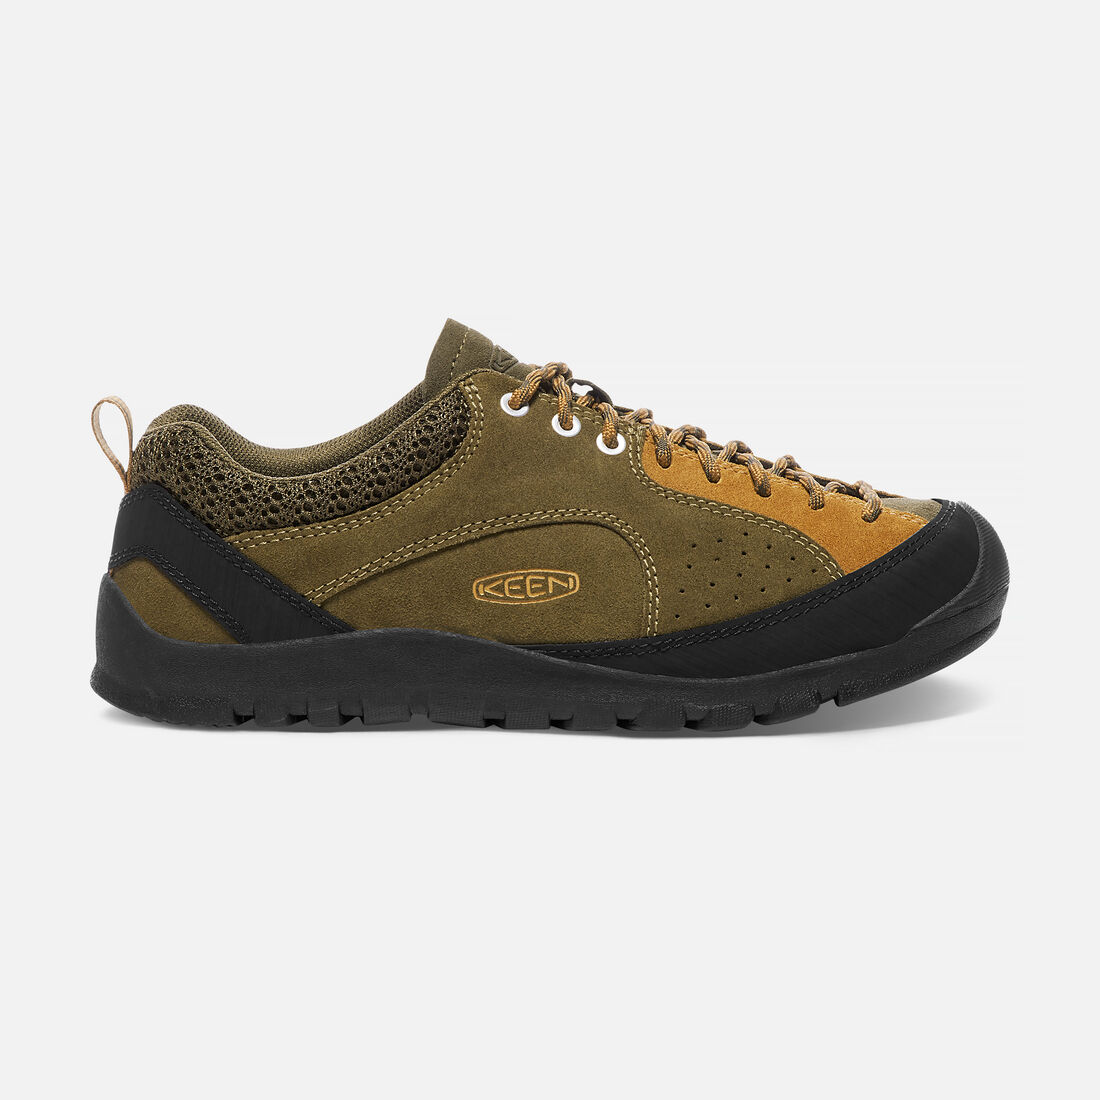 Men's Jasper Rocks in Military Olive/Cathay Spice - large view.